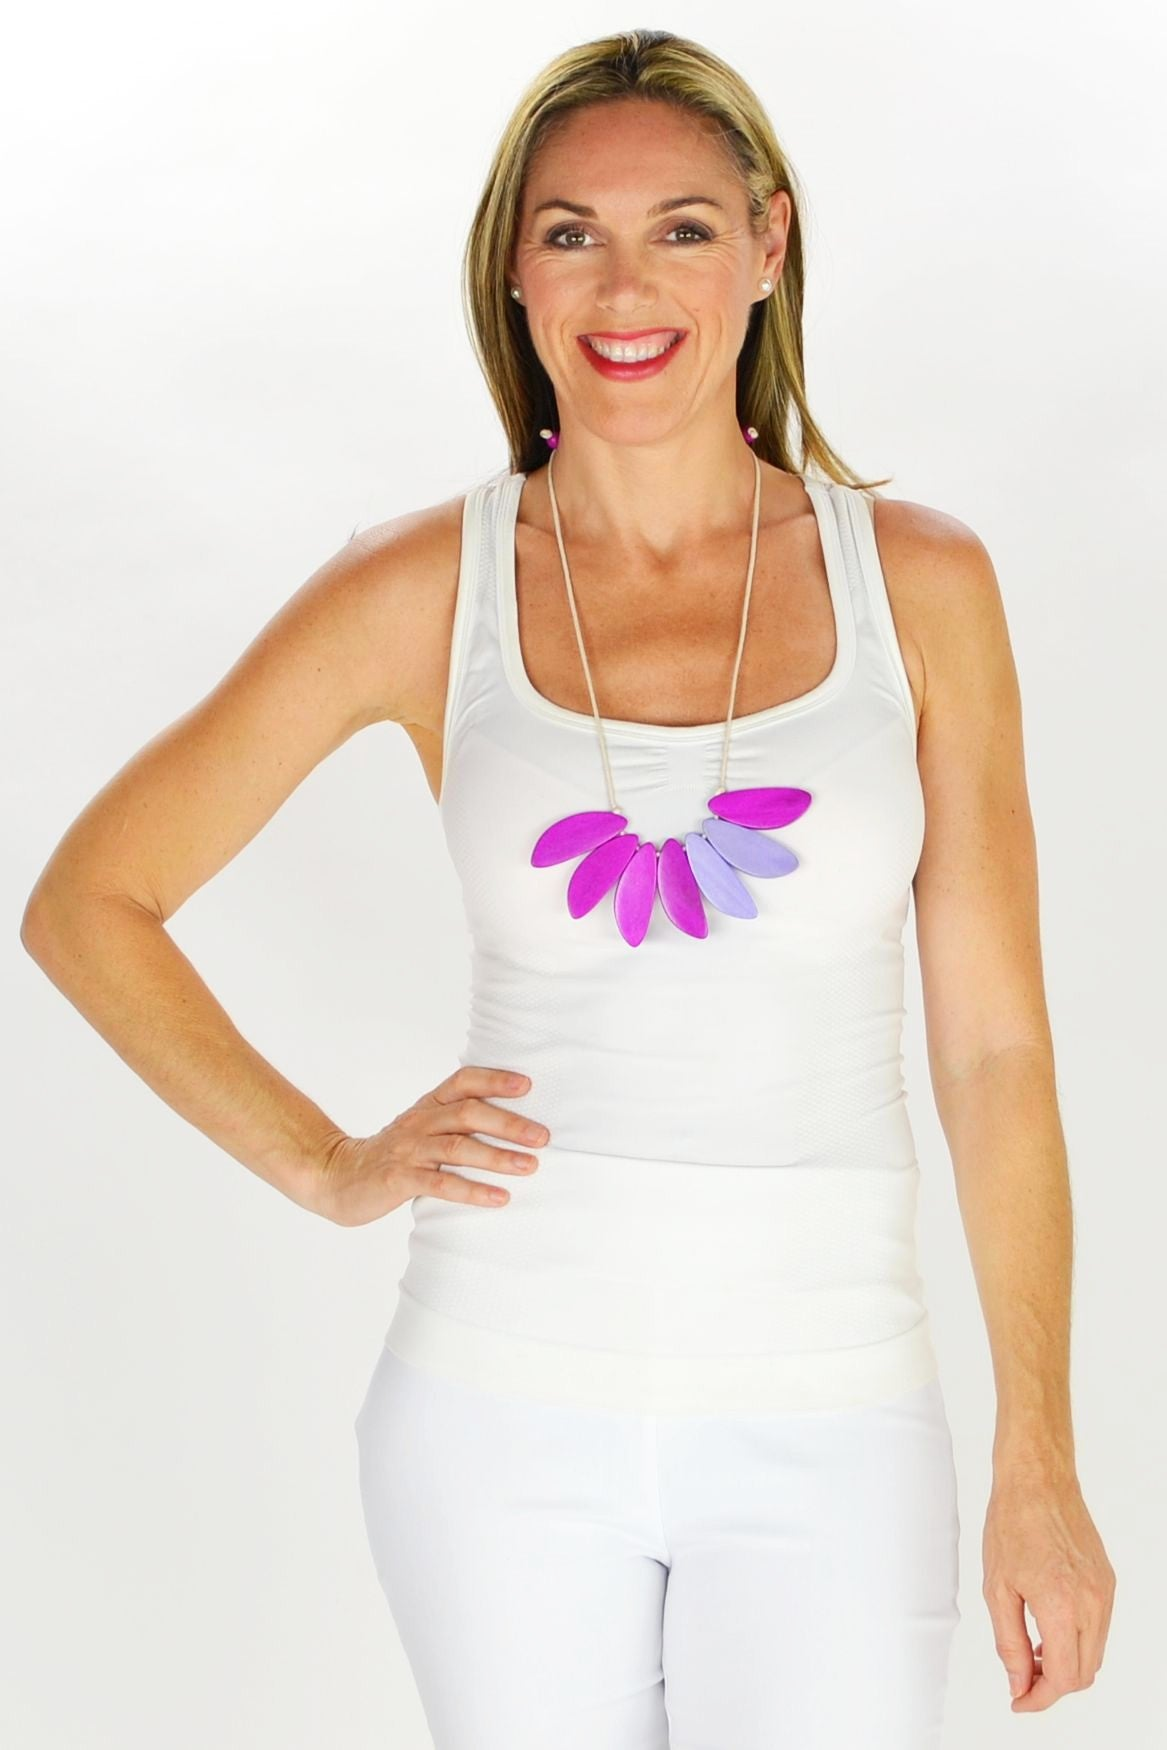 Purple Petals Necklace - at I Love Tunics @ www.ilovetunics.com = Number One! Tunics Destination